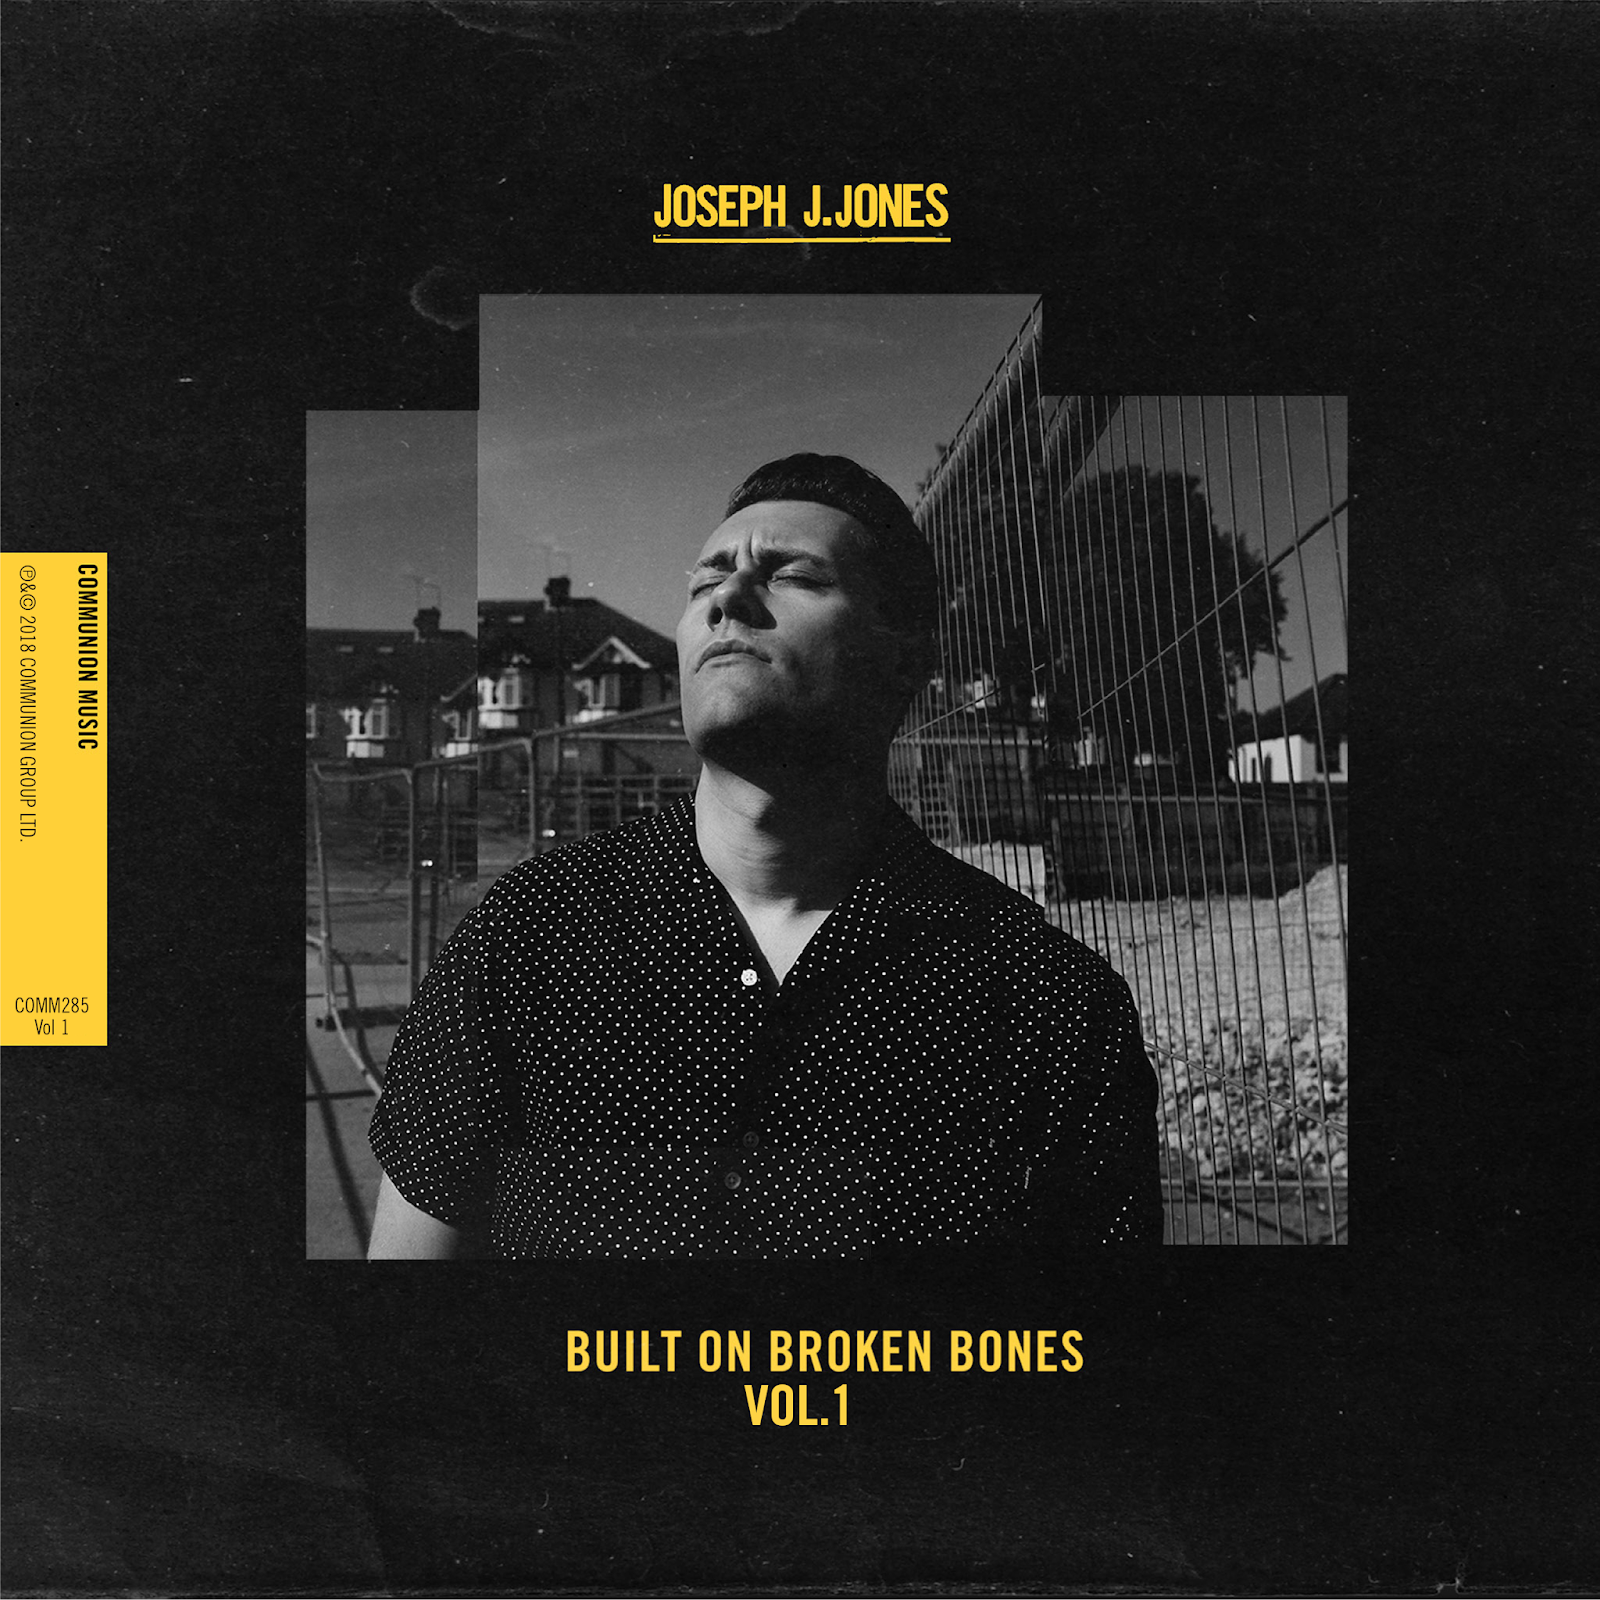 Joseph J. Jones - BUILT ON BROKEN BONES VOL.1 | Musiktipp mit Full Album Stream